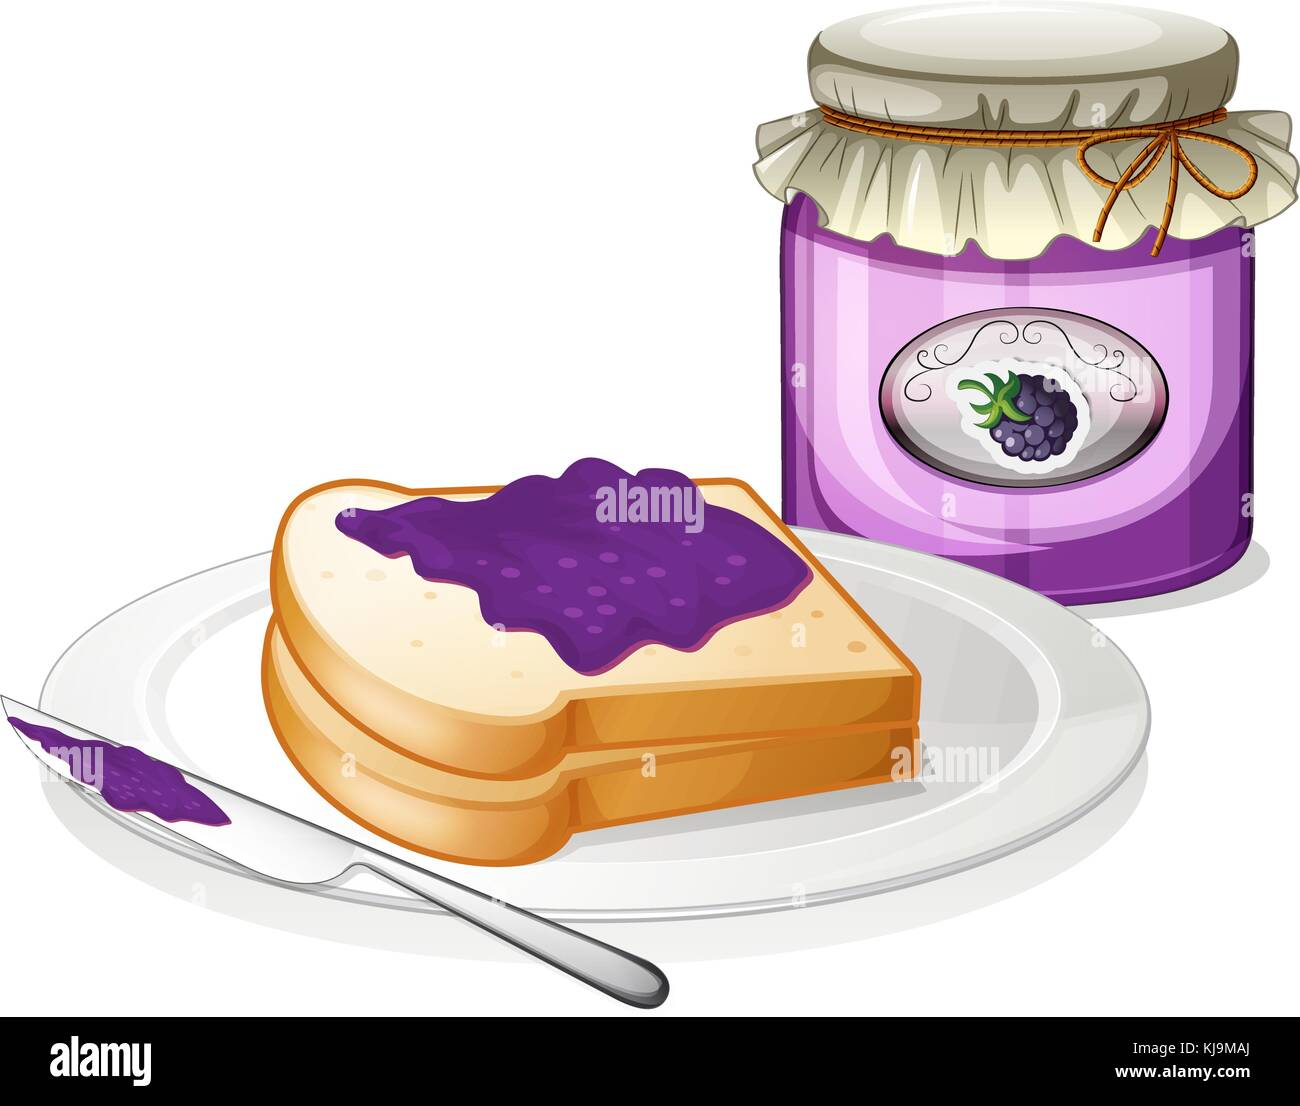 Illustration of a slice bread and a bottle of grape jam on a white background - Stock Vector